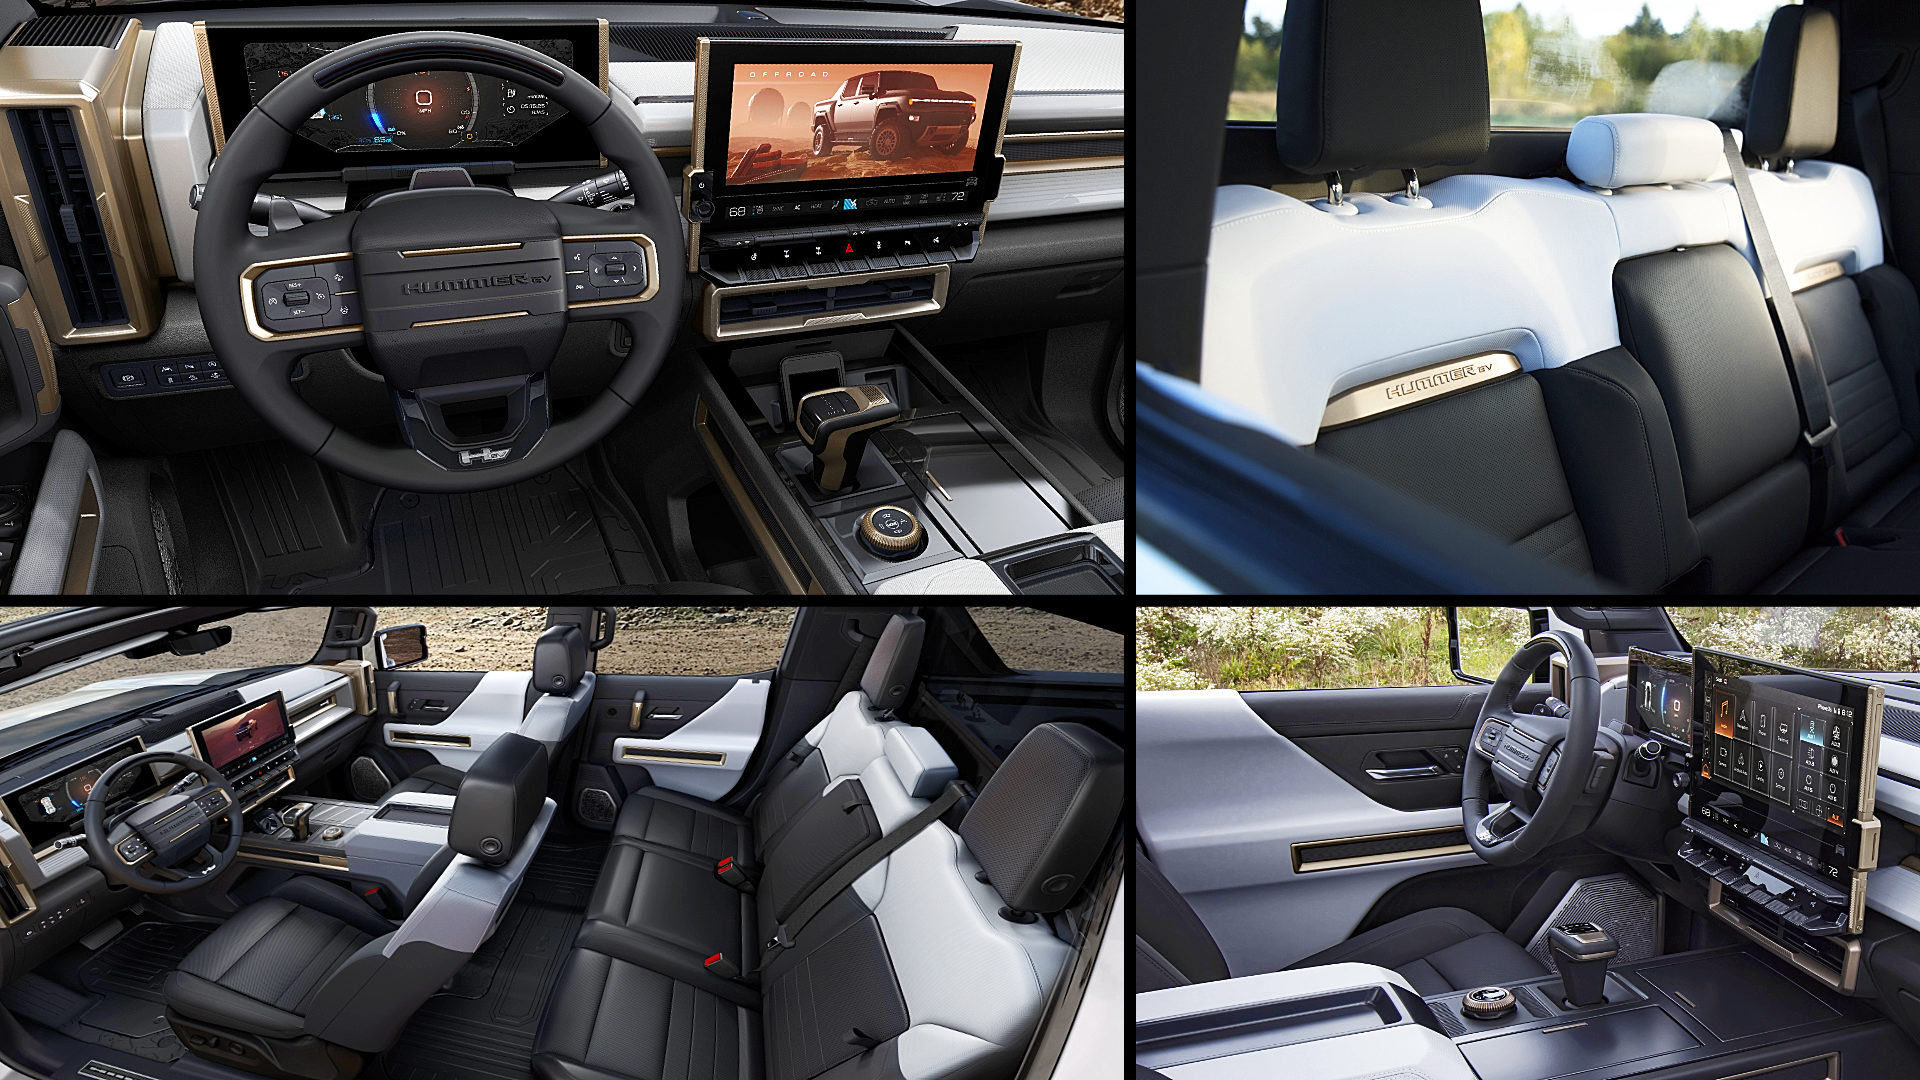 2022 GMC Hummer Electric Truck Interior